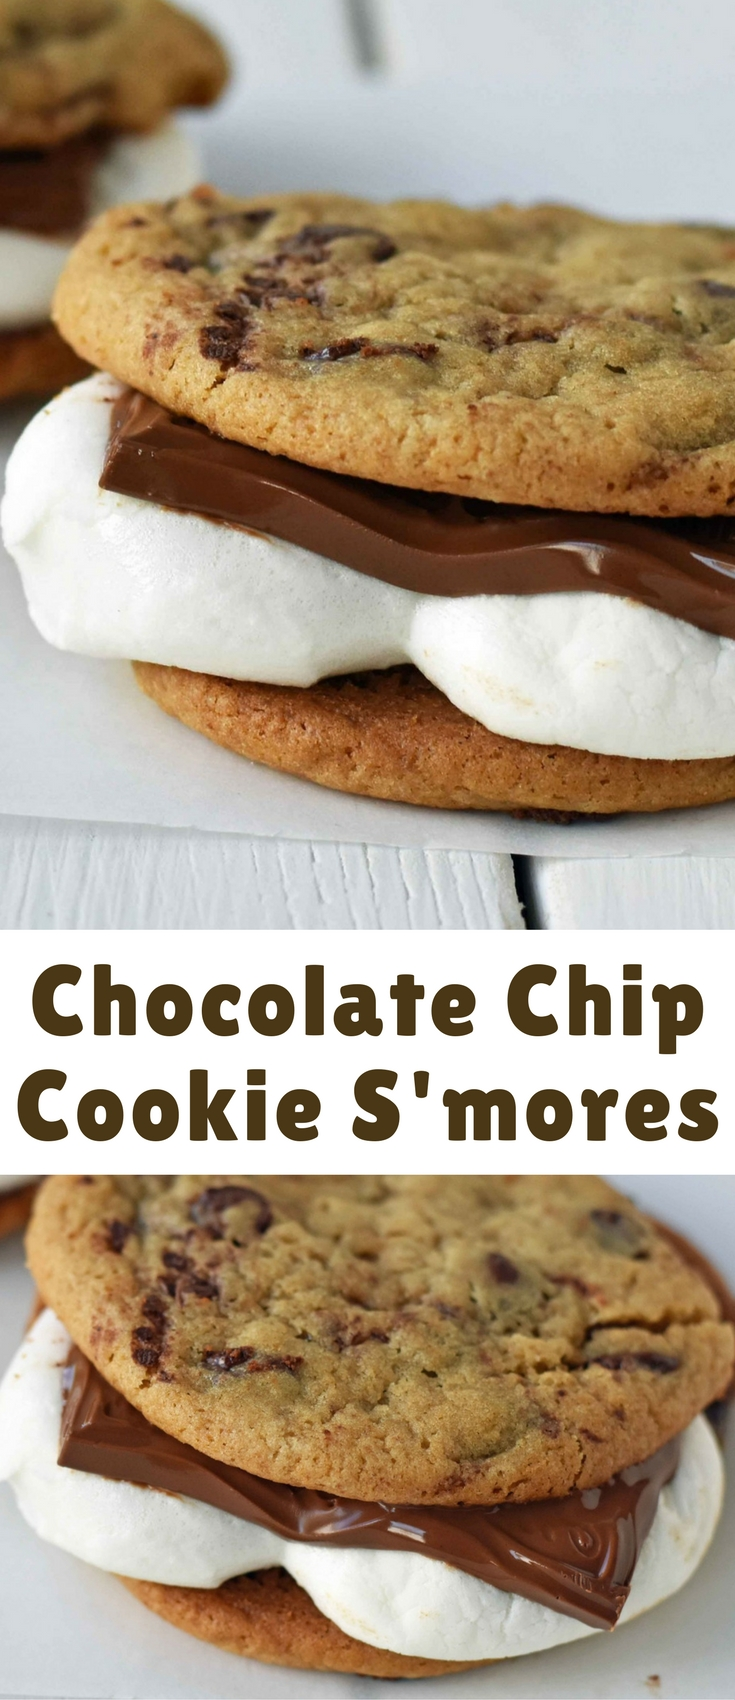 Warm homemade chocolate chip cookies stuffed with toasted marshmallow and melted milk chocolate.